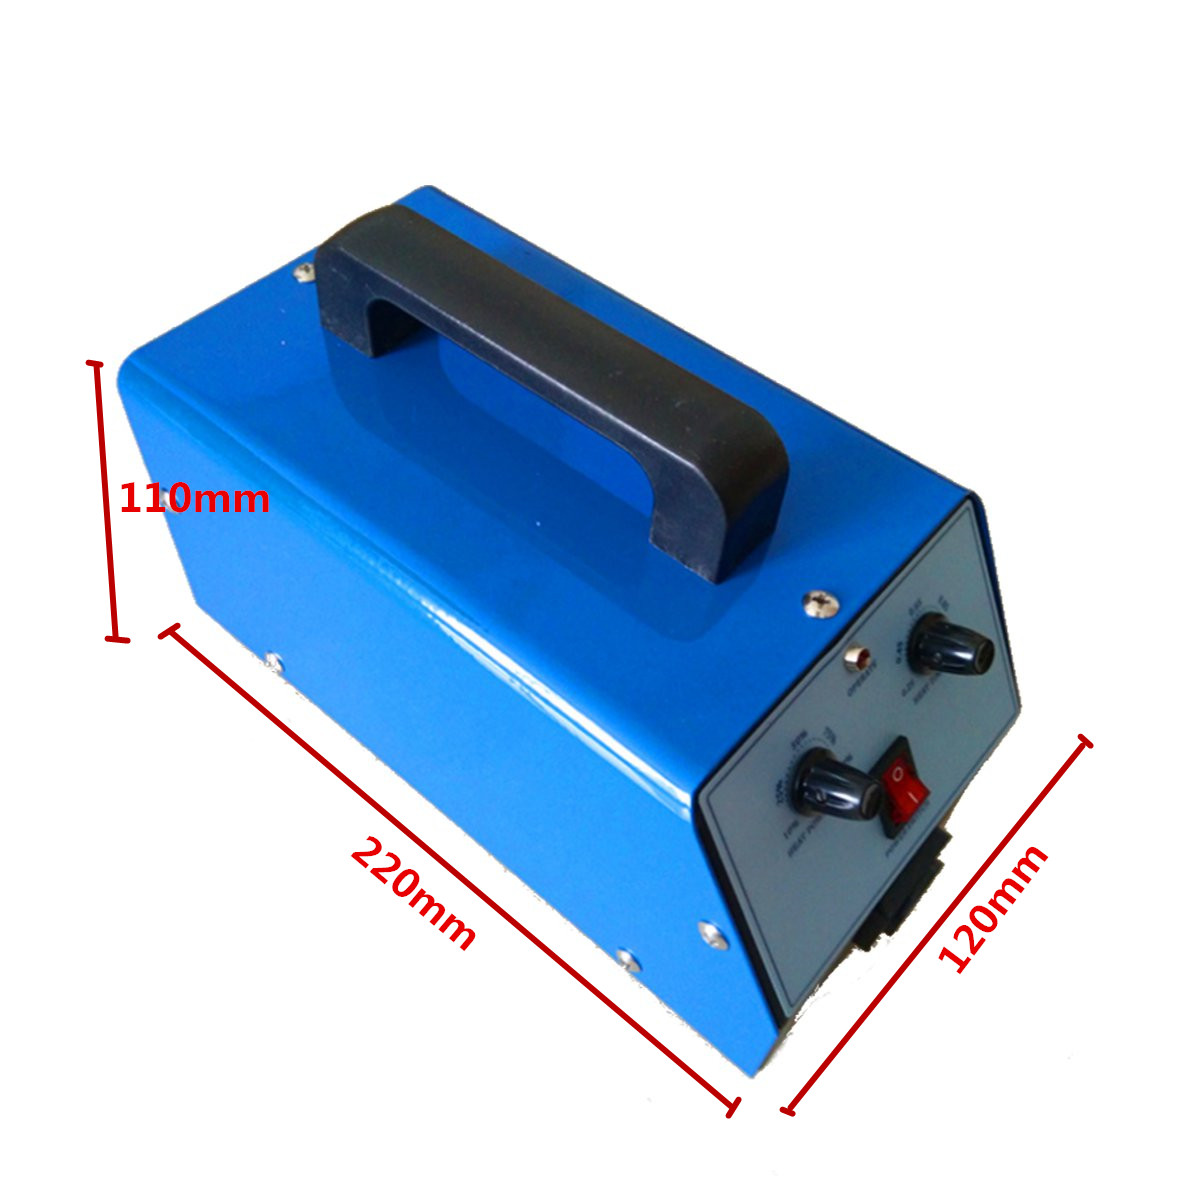 220V Blue Hot Box PDR Induction Heater for Removing Paintless Dent Repair Tool